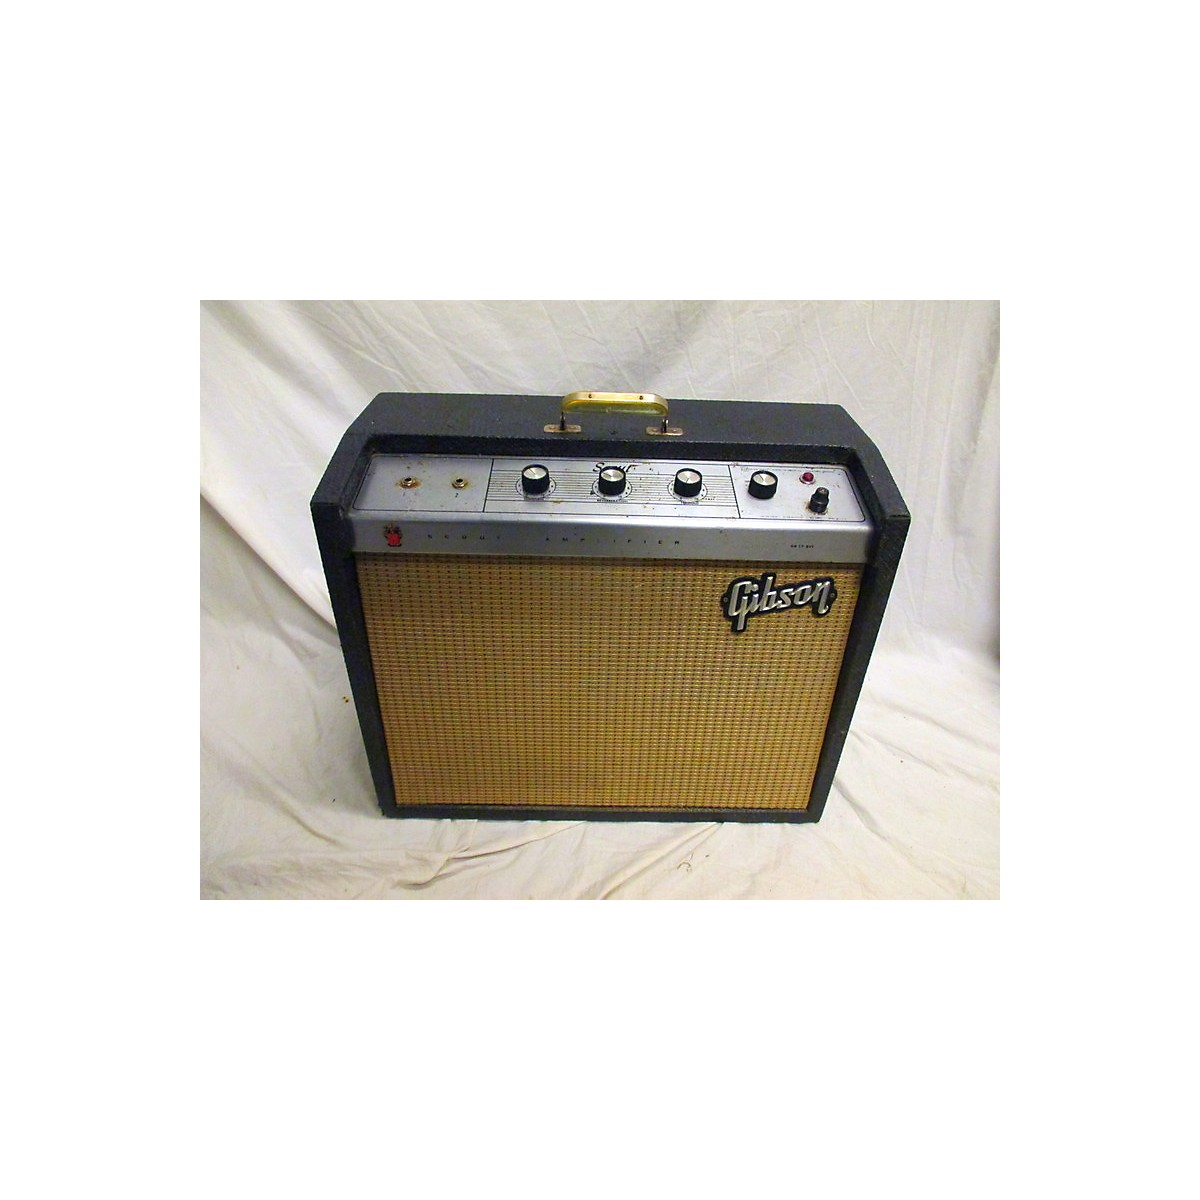 Gibson 1965 Ga-17 RVT Scout Combo Tube Guitar Combo Amp